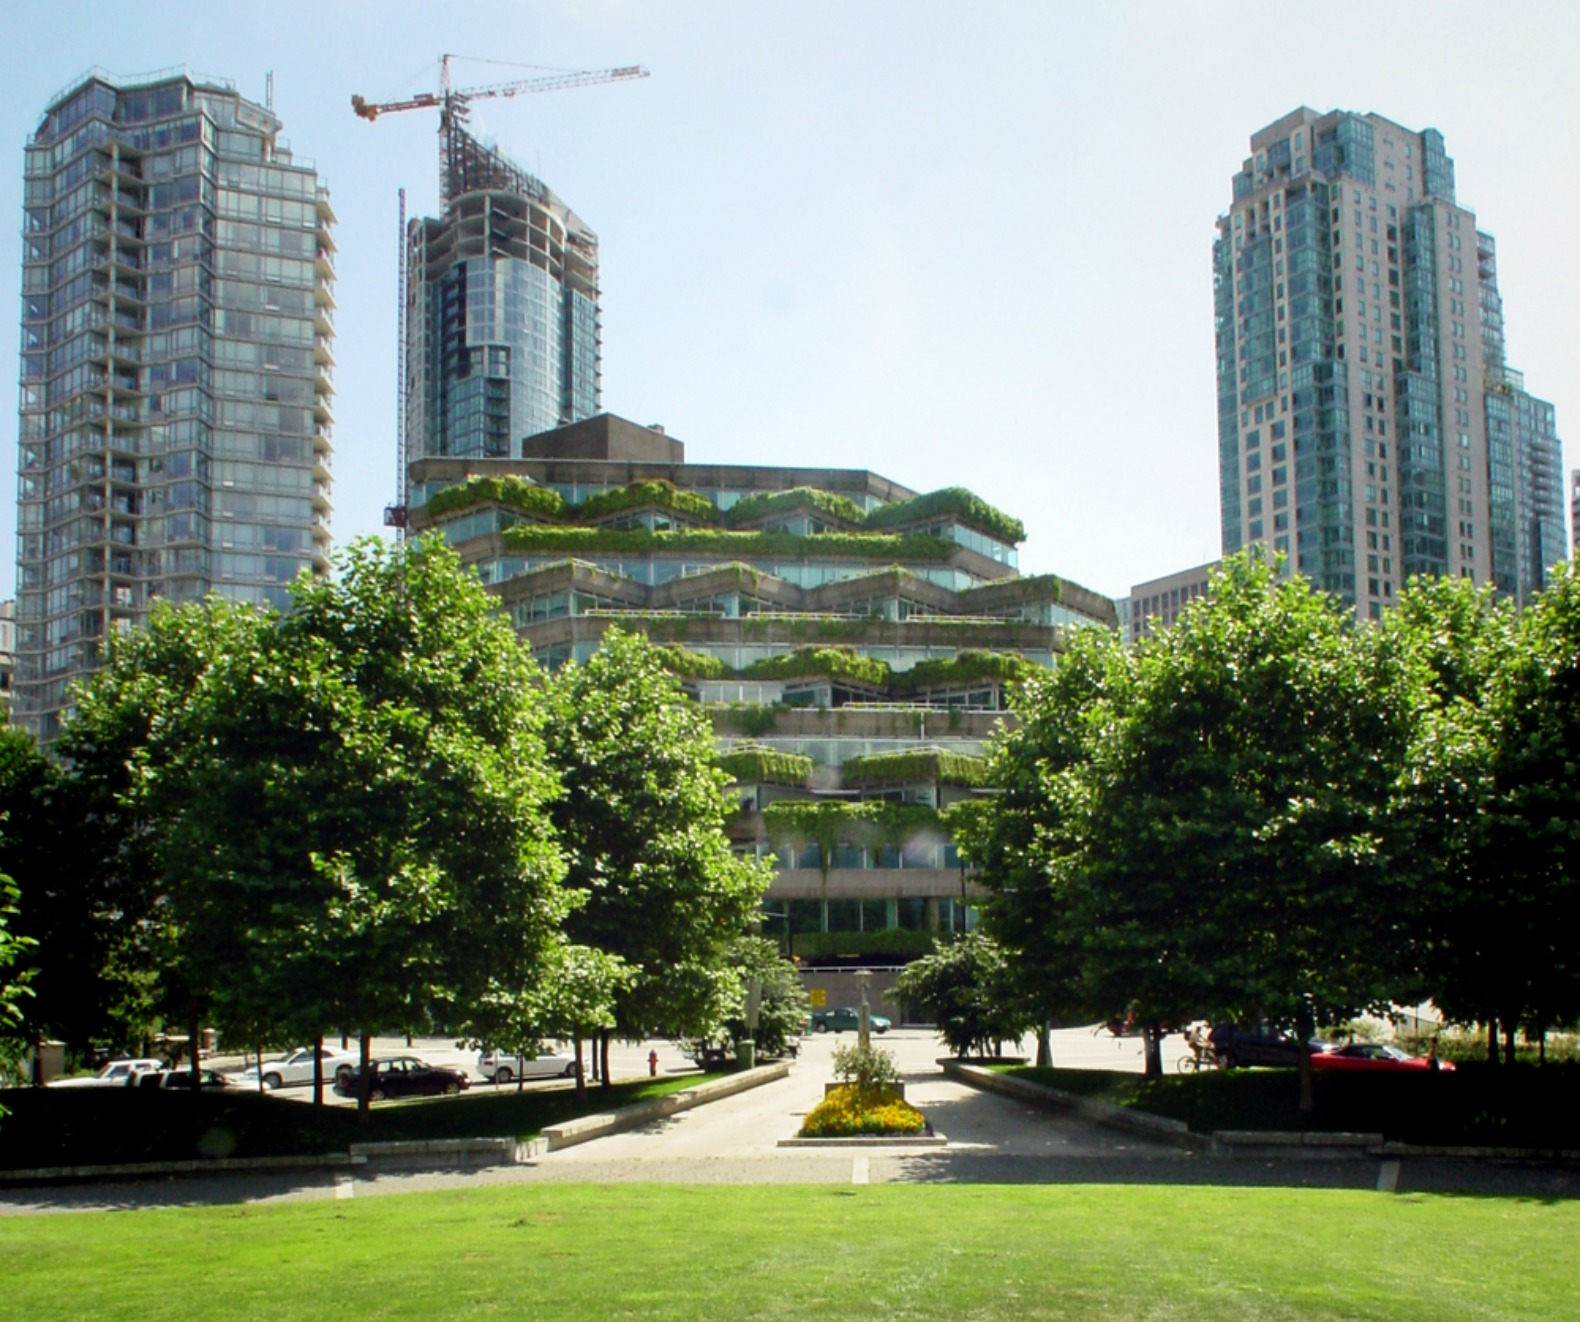 Shigeru ban architects unveil plans for the world 39 s - Green design ...